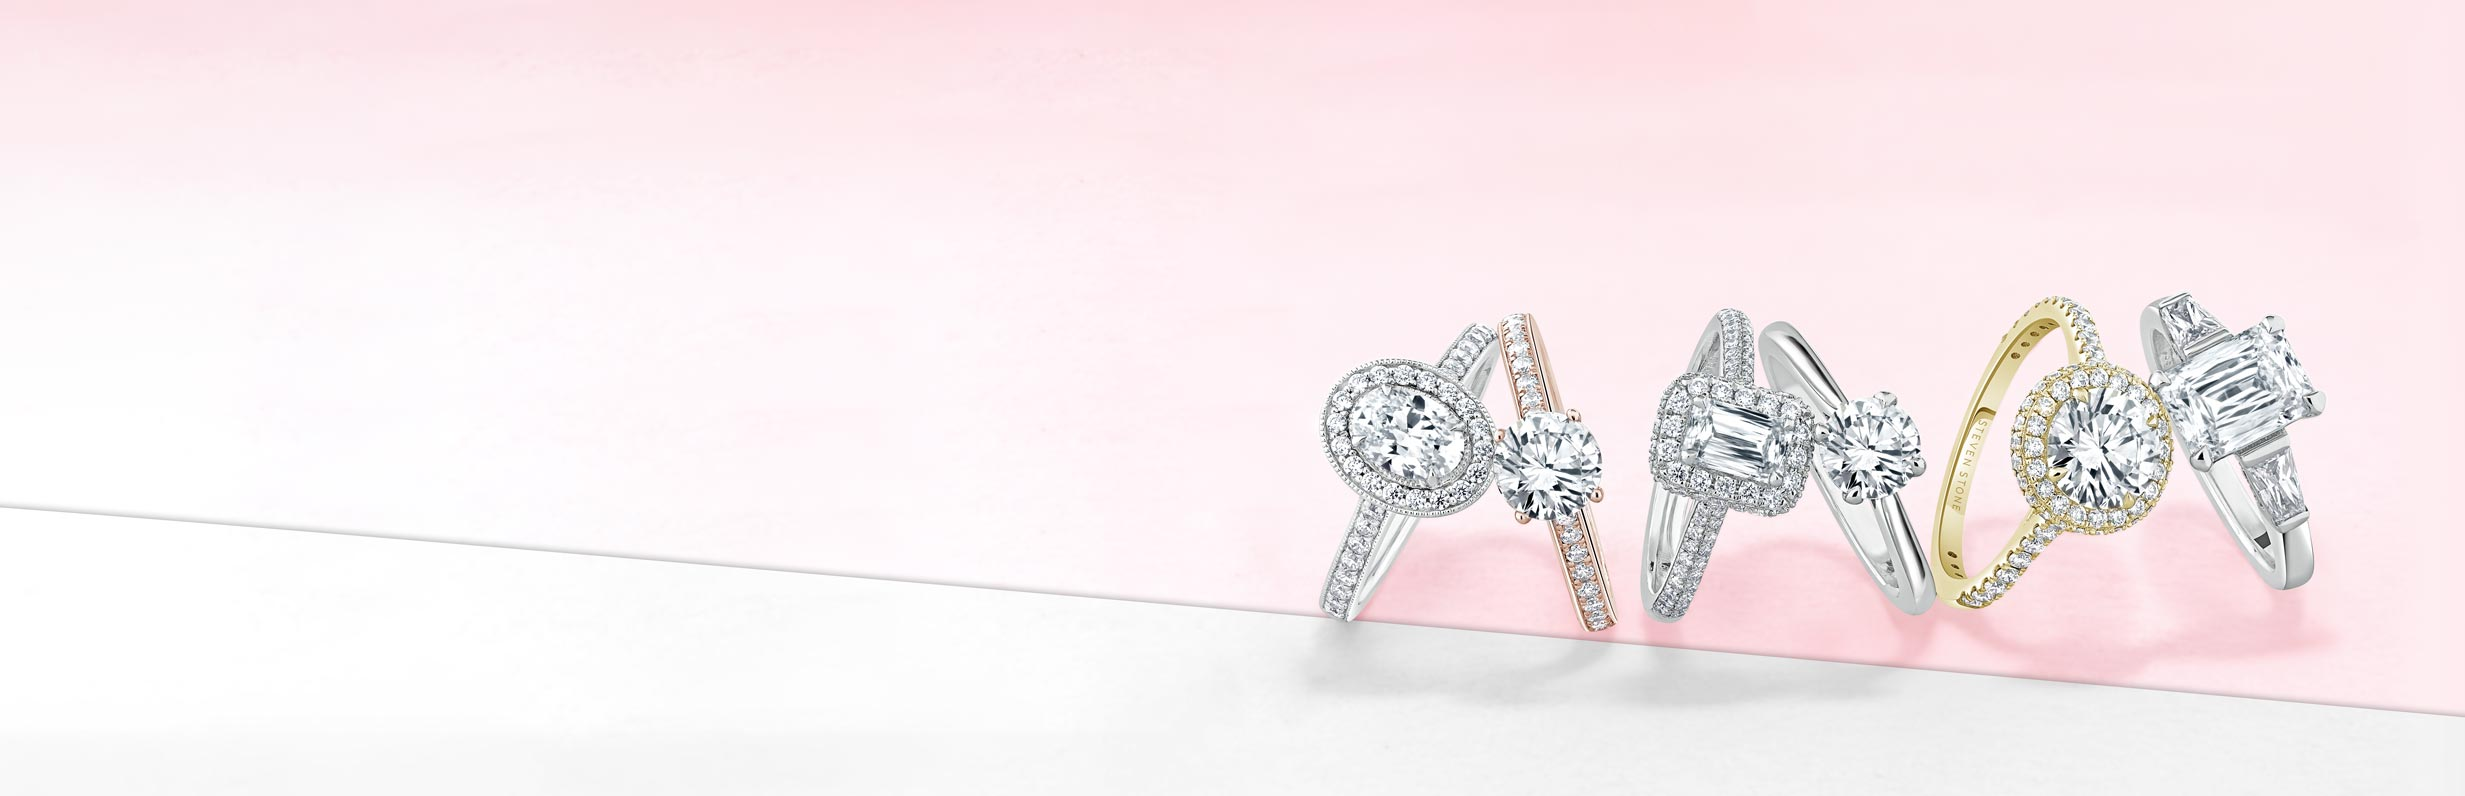 White Gold Solitaire Engagement Rings - Steven Stone